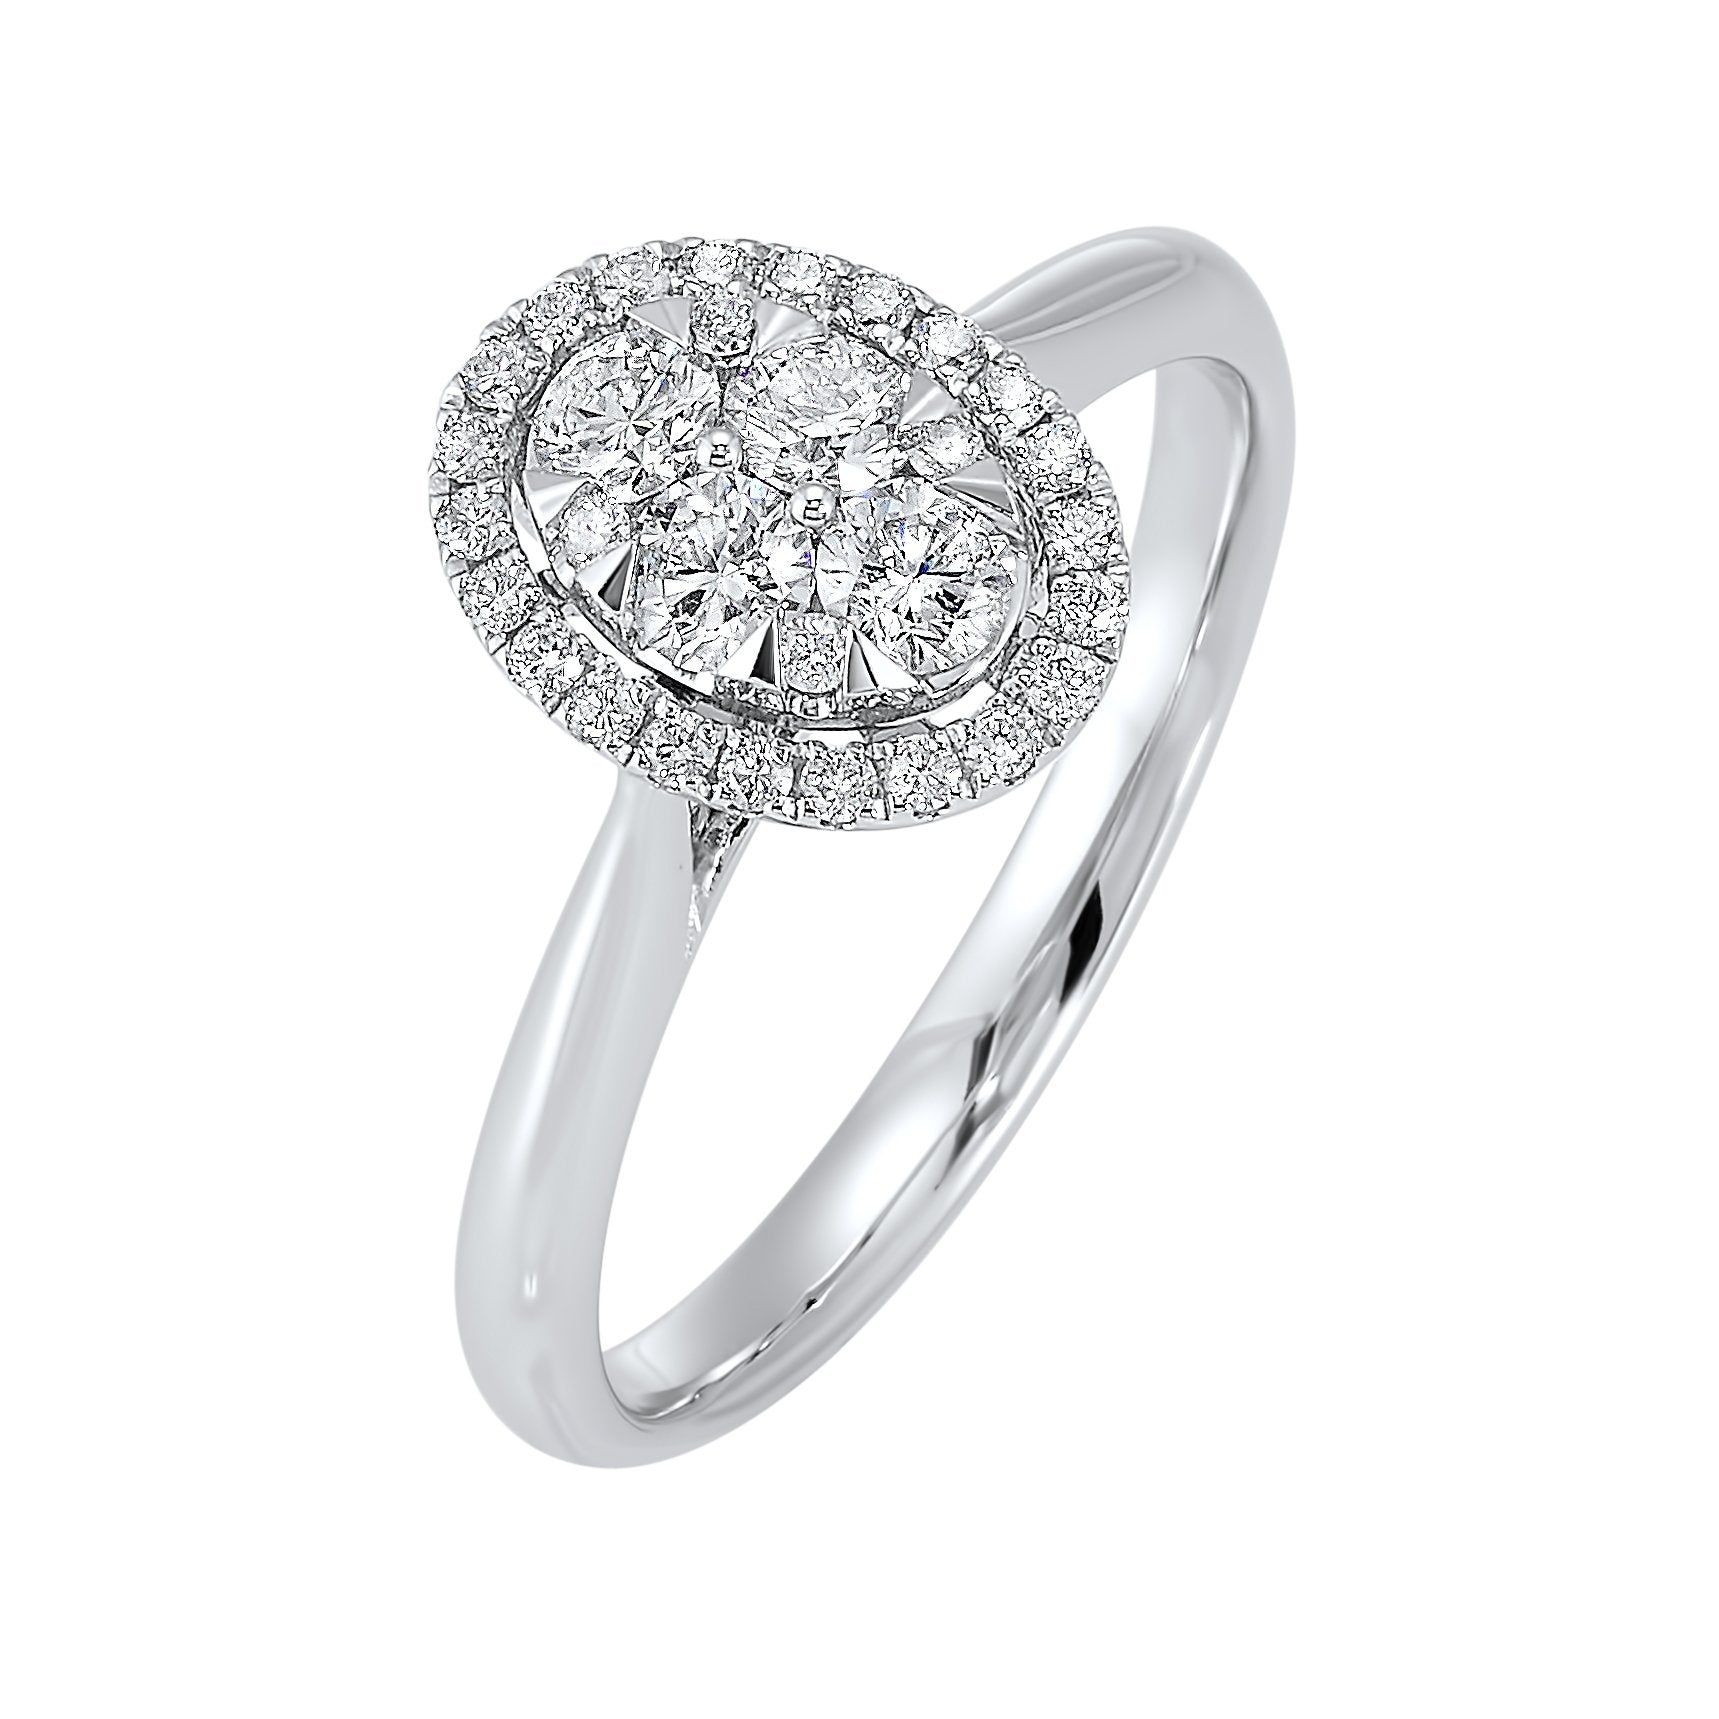 Oval Halo Diamond Engagement Ring in 14K White Gold (1/4 ct. tw.)